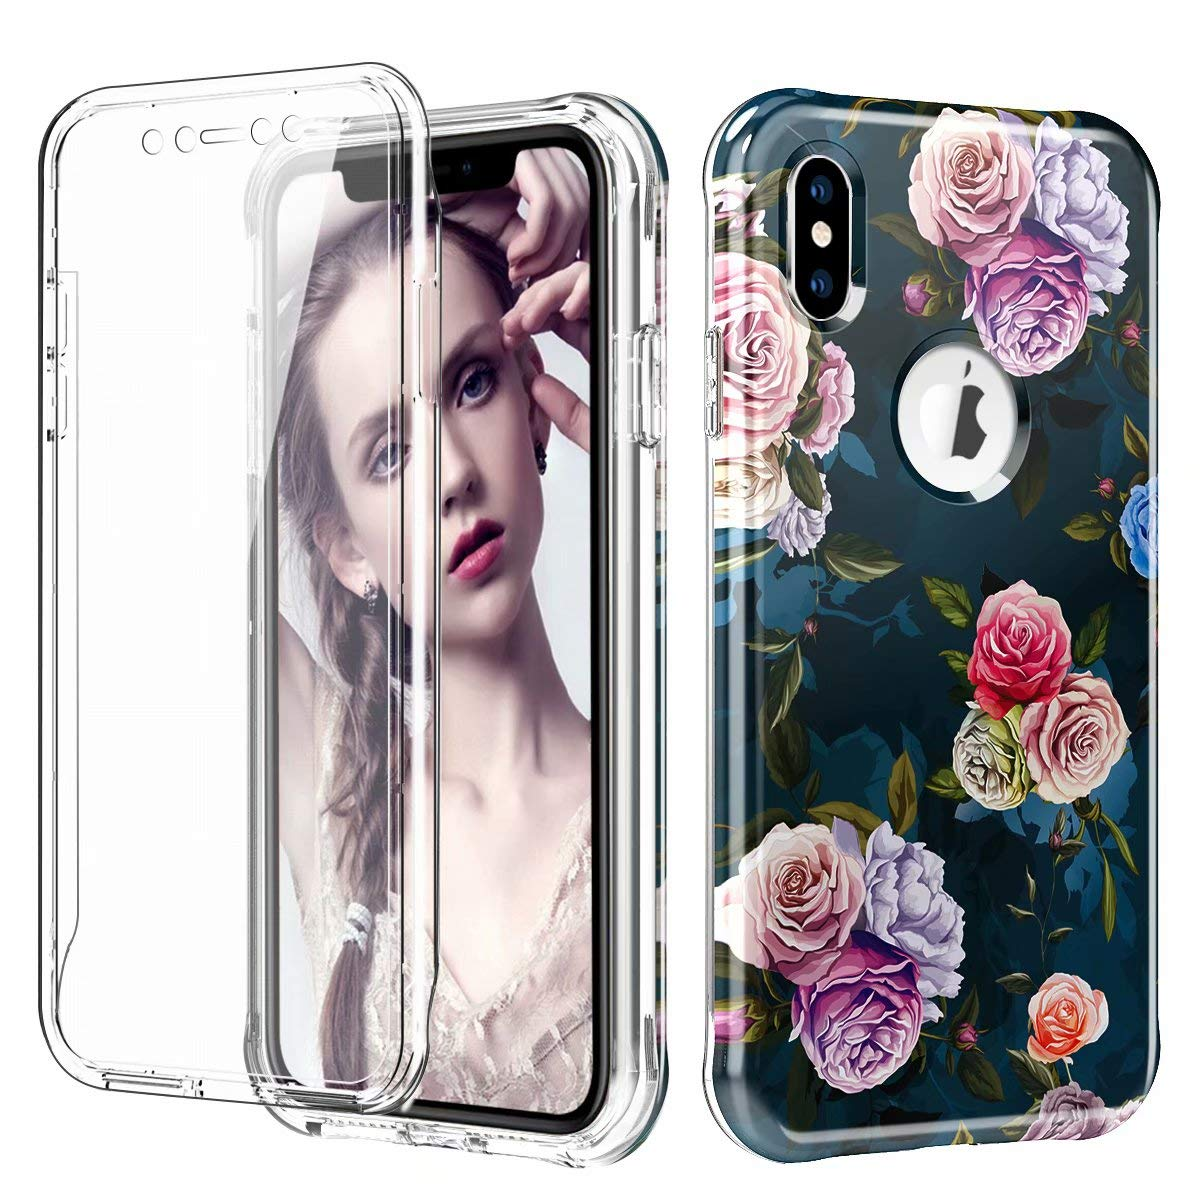 iPhone Xs Max Case, Ranyi Full Body Protective Crystal Transparent Cover Hybrid Bumper [Built in Screen Protector] Shock Absorbing Slim Flexible Resilient TPU Case for 6.5'' iPhone Xs Max (Flower) by Ranyi